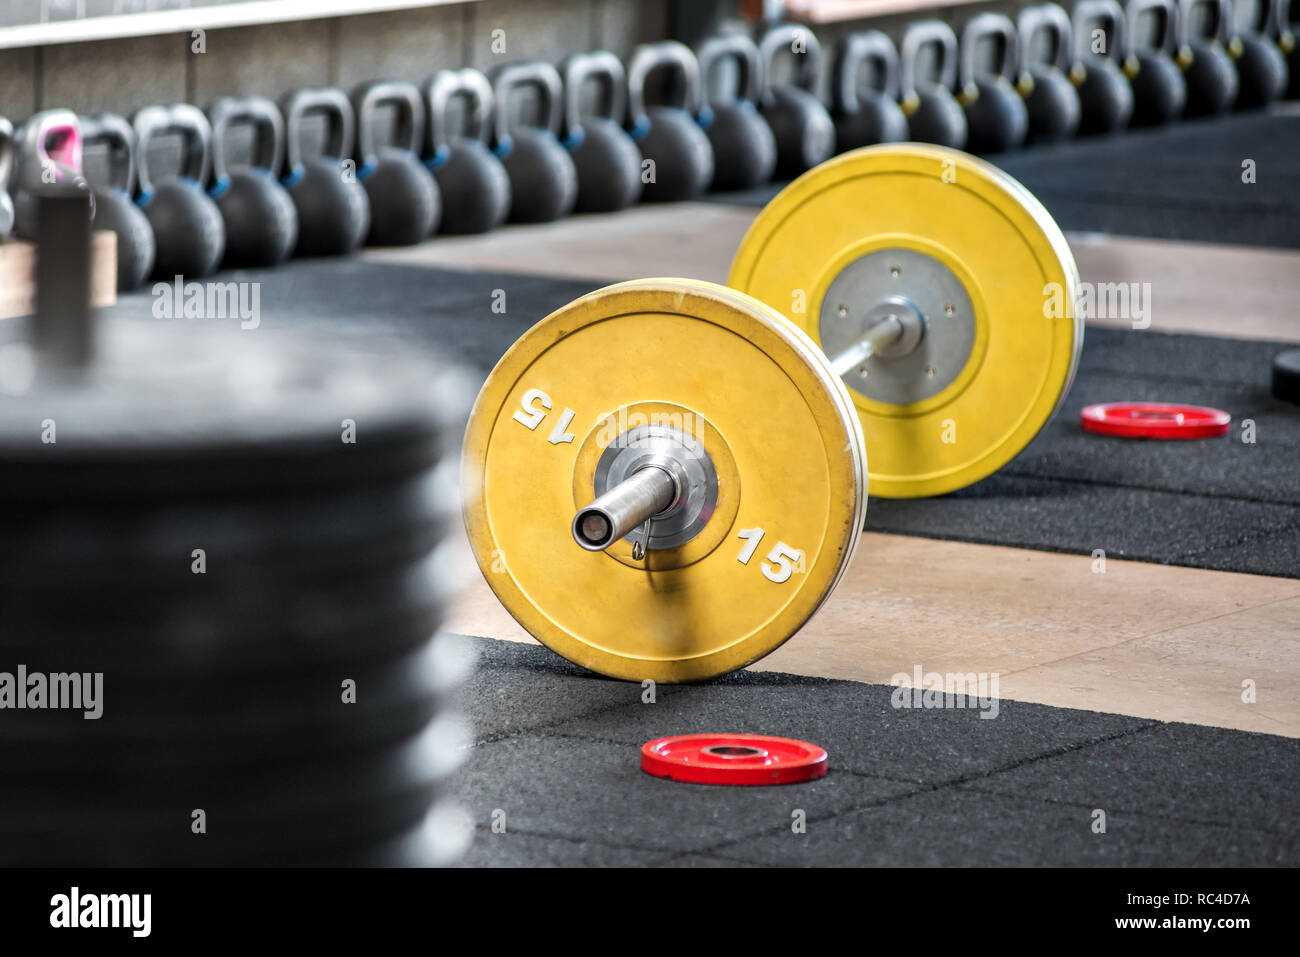 Yellow barbell on the floor in gym, viewed from the side in selective focus. Heavy weights training equipment - Stock Image